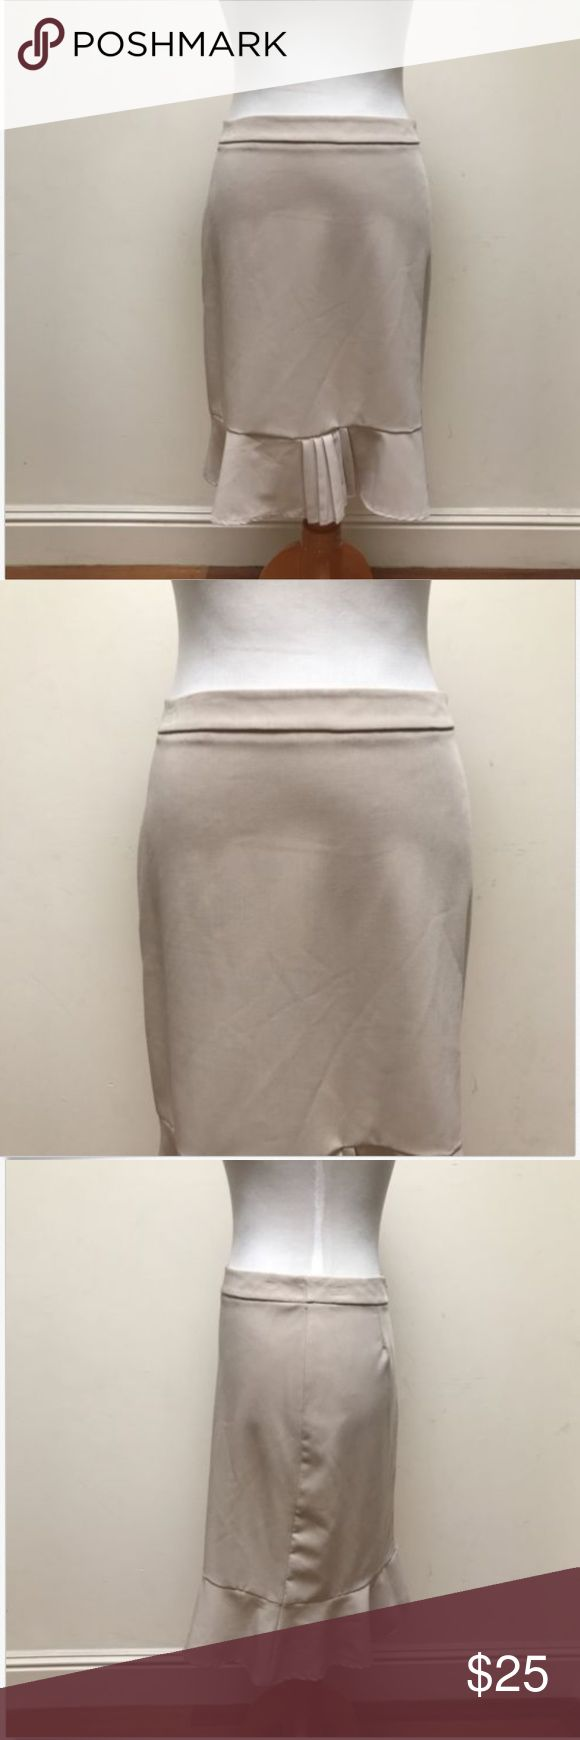 Sinequanone Paris Beige Fitted Trumpet Skirt Sinequanone Paris Women's Beige Fitted Trumpet Pleated Skirt No stains or rips.  Good condition.  Tag pinhole on the side. Measurements approximate:  (Garment is lying flat and unstretched) Waist: 15', Length: 22' Sinequanone Skirts Pencil